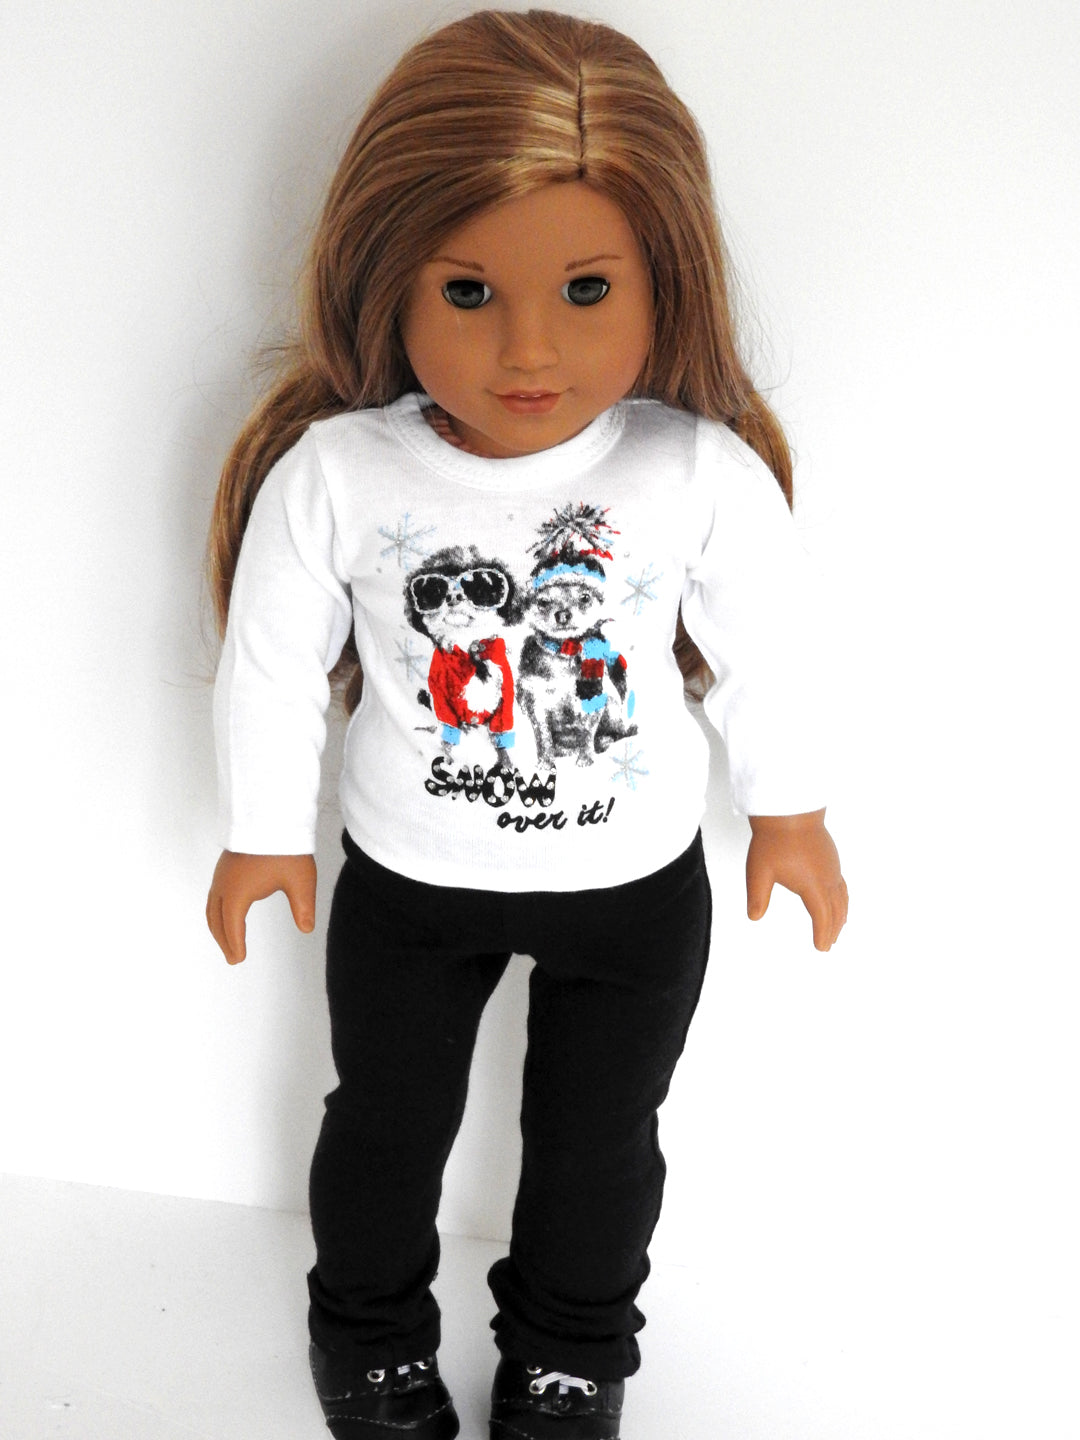 American Girl Doll Plain Graphic T-Shirt and Yoga Pants